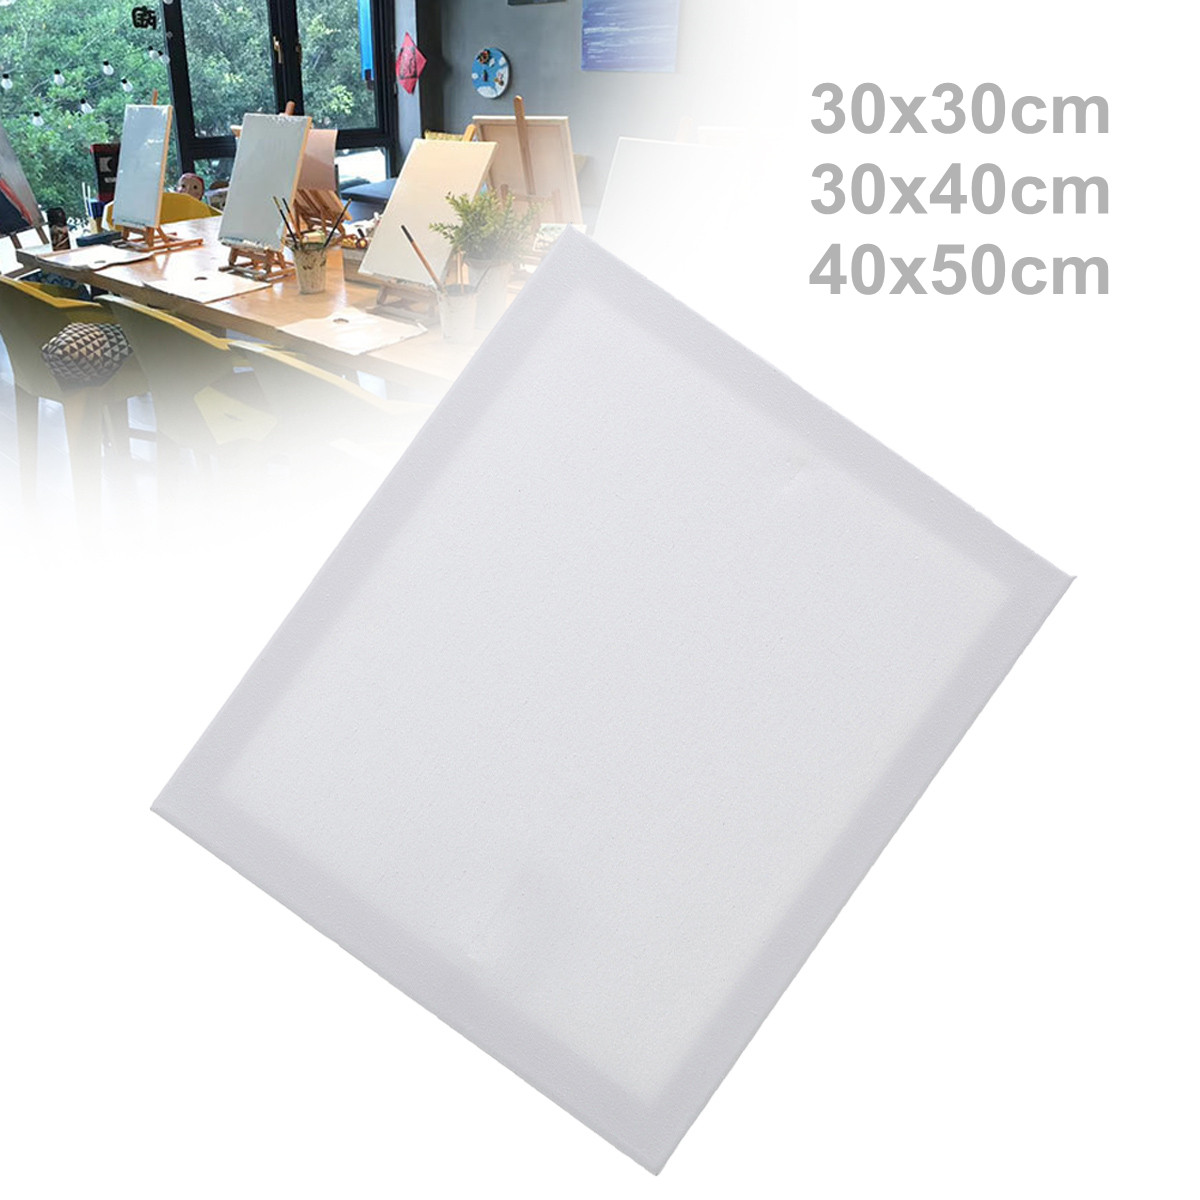 Cotton Wooden Paint Board Frame Blank Plain Stretched Painting Art Acrylic Canvas Oil Paint Board 3 Size Optional For Portraits